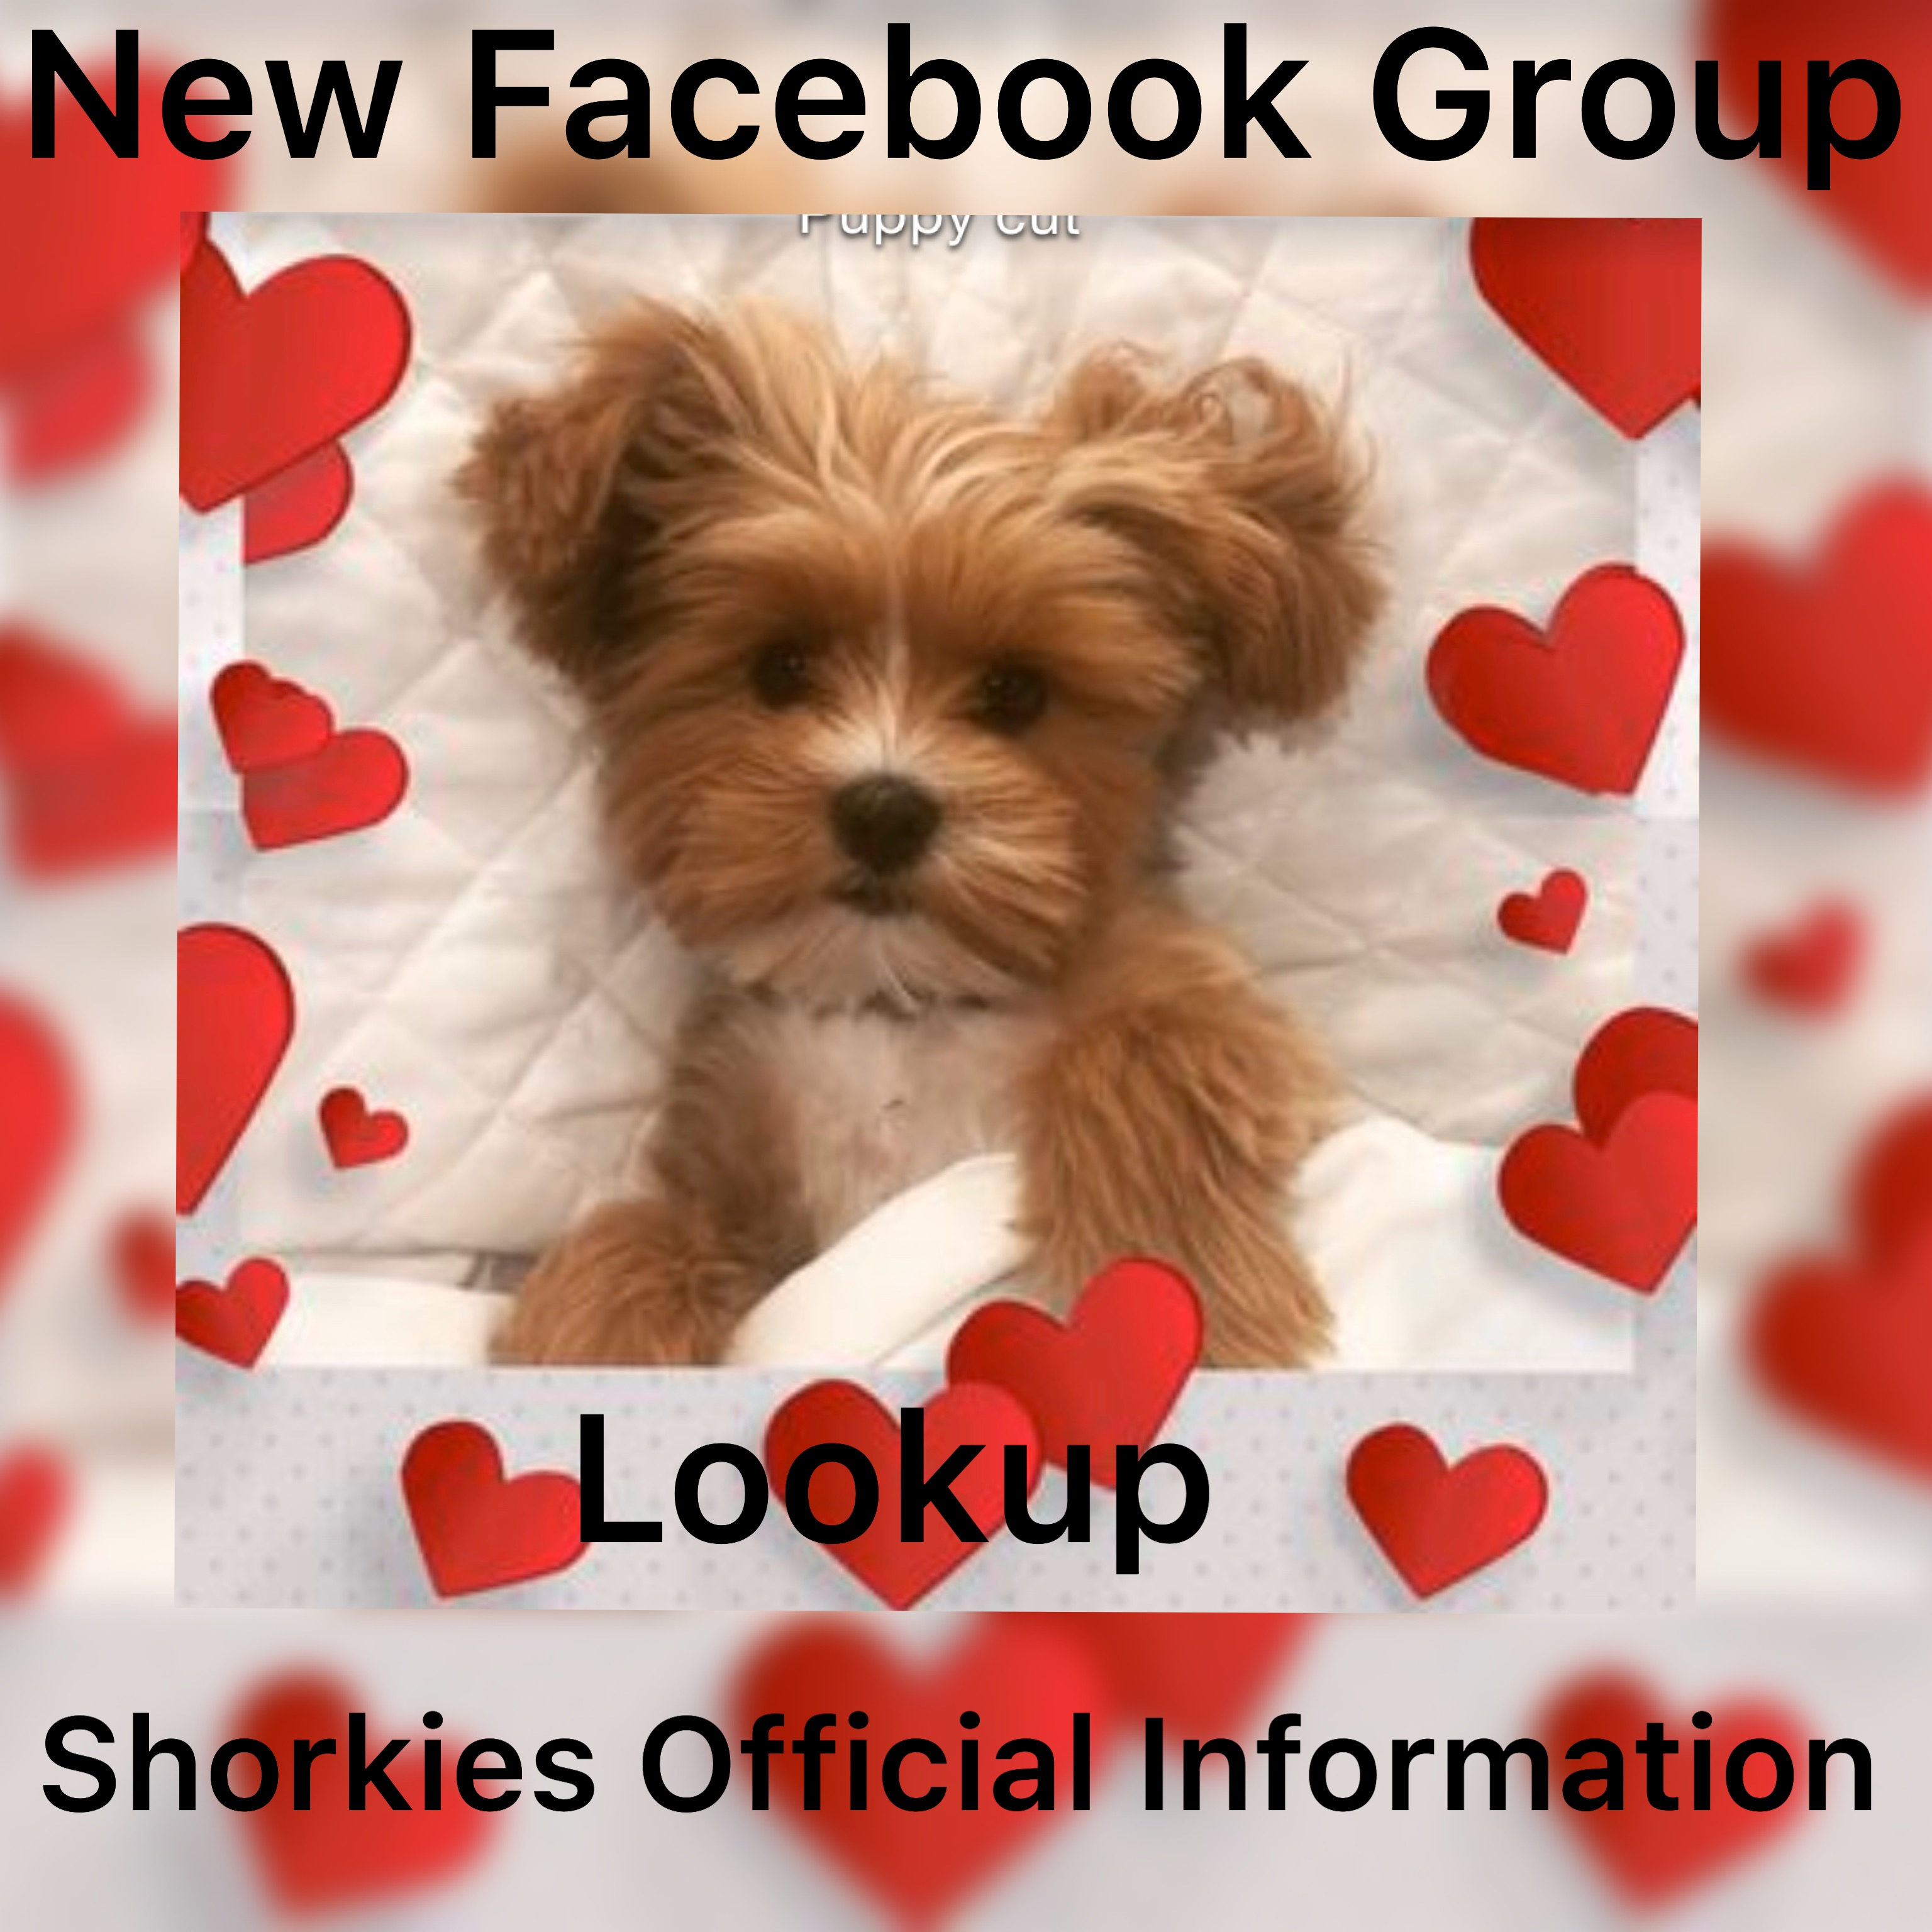 OUR NEW FACEBOOK GROUP IS HERE!